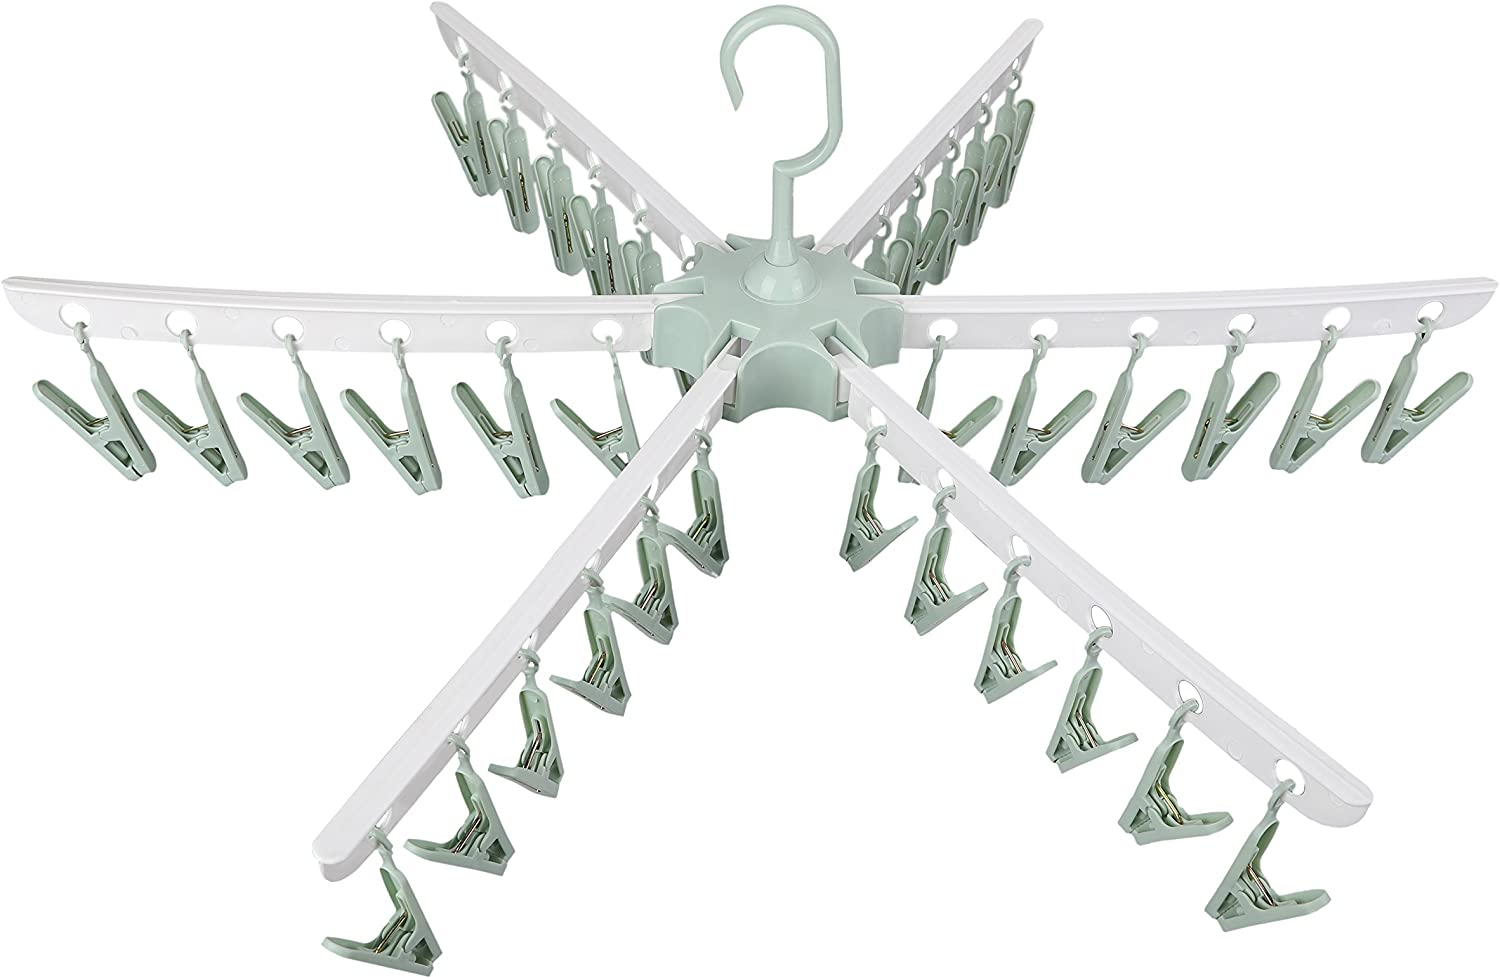 Swivel Hook Plastic 36 Pegs Drying Rack Clothes Hanger for Underwear Socks Gloves (Green)